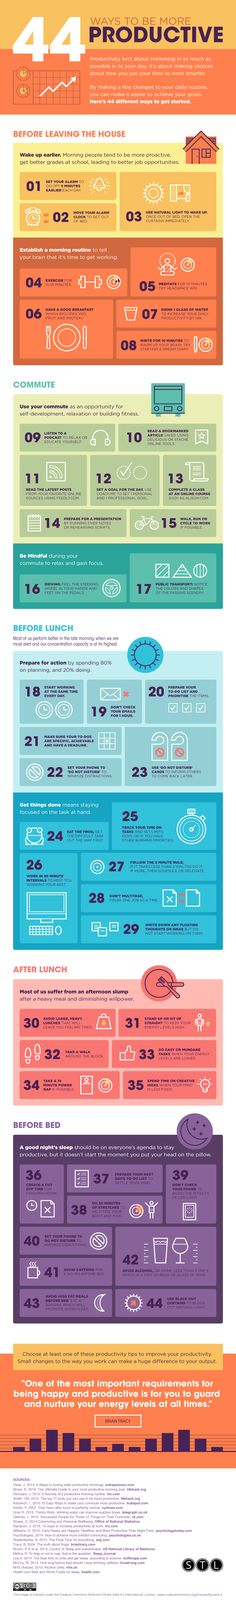 Infographic: 44 ways to be more productive - Matador Network #productivity #infographic